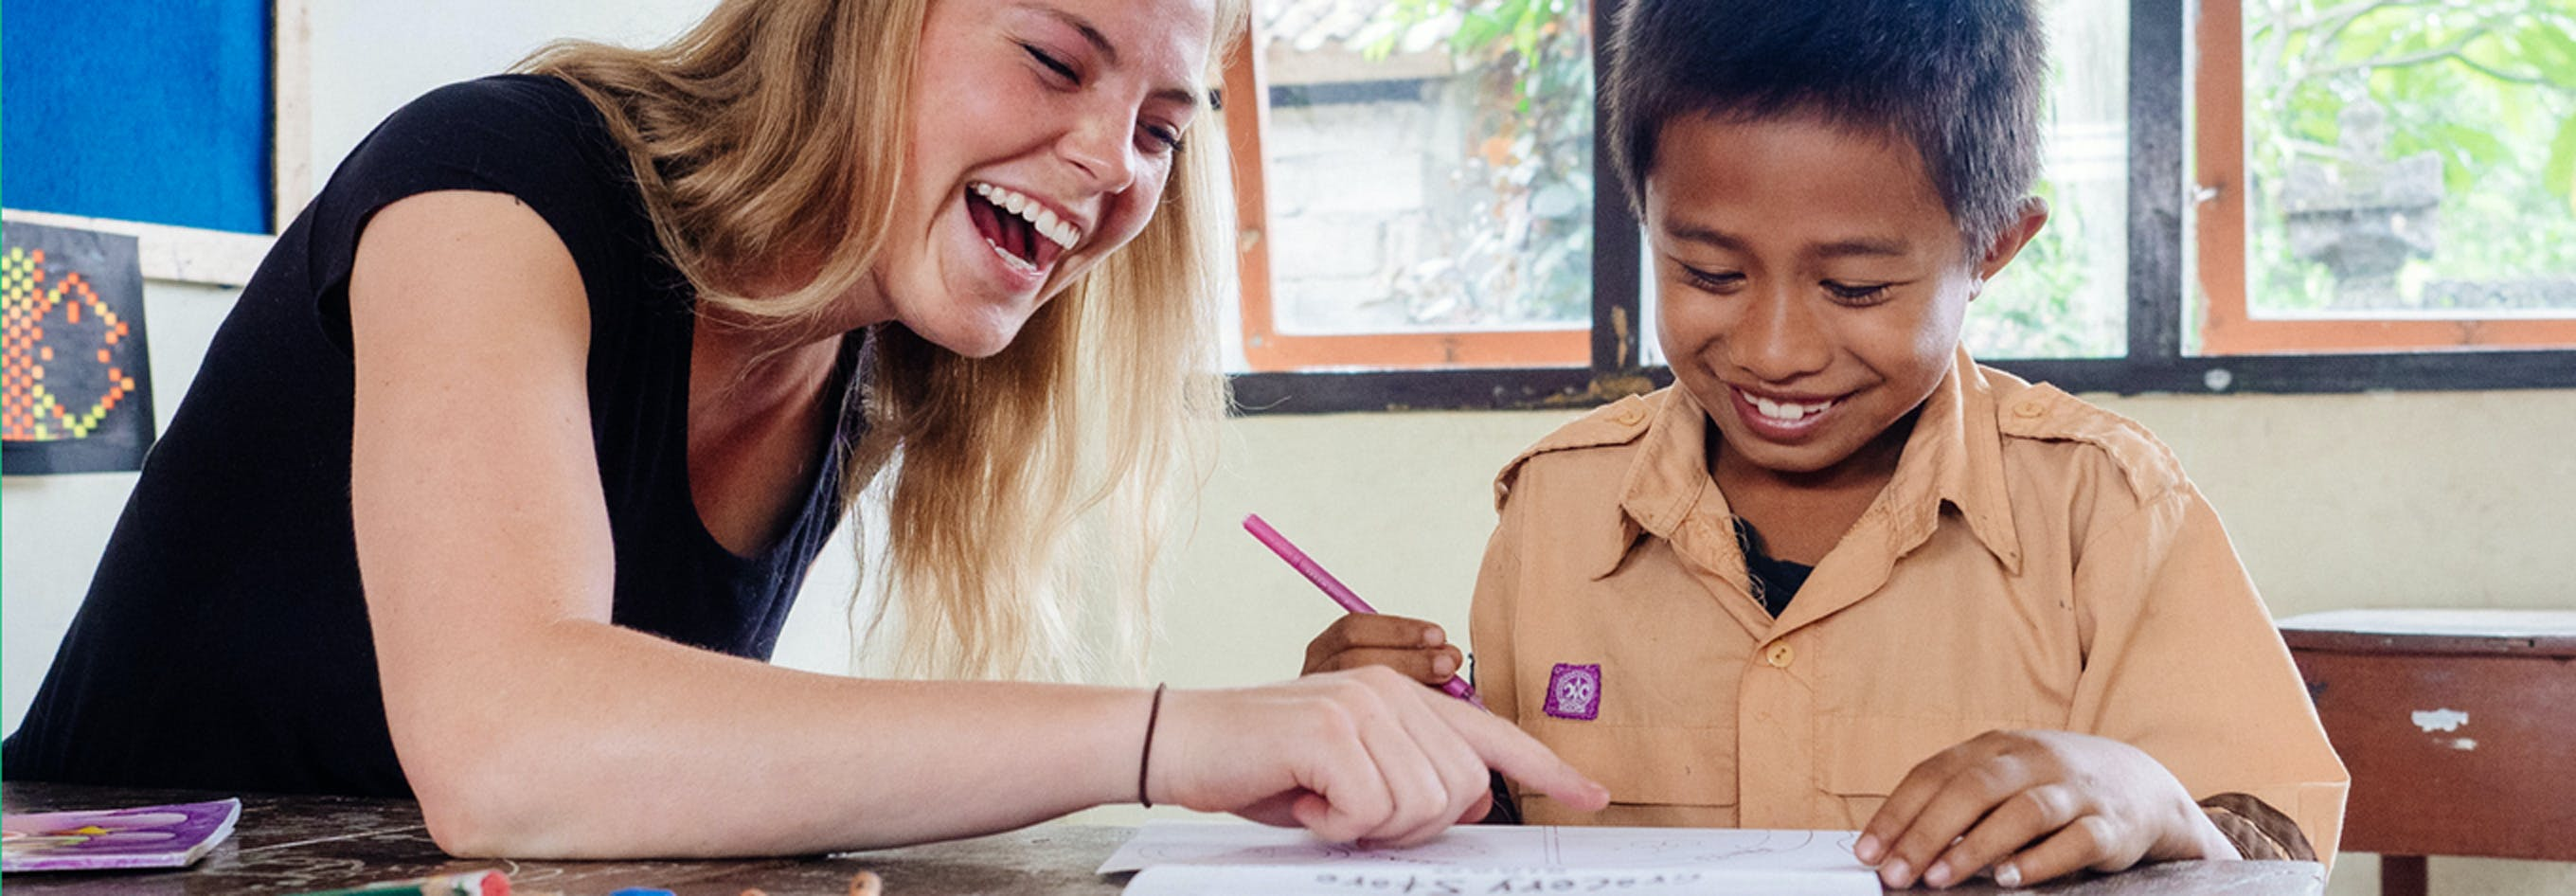 Volunteer in Bali, Indonesia with International Volunteer HQ